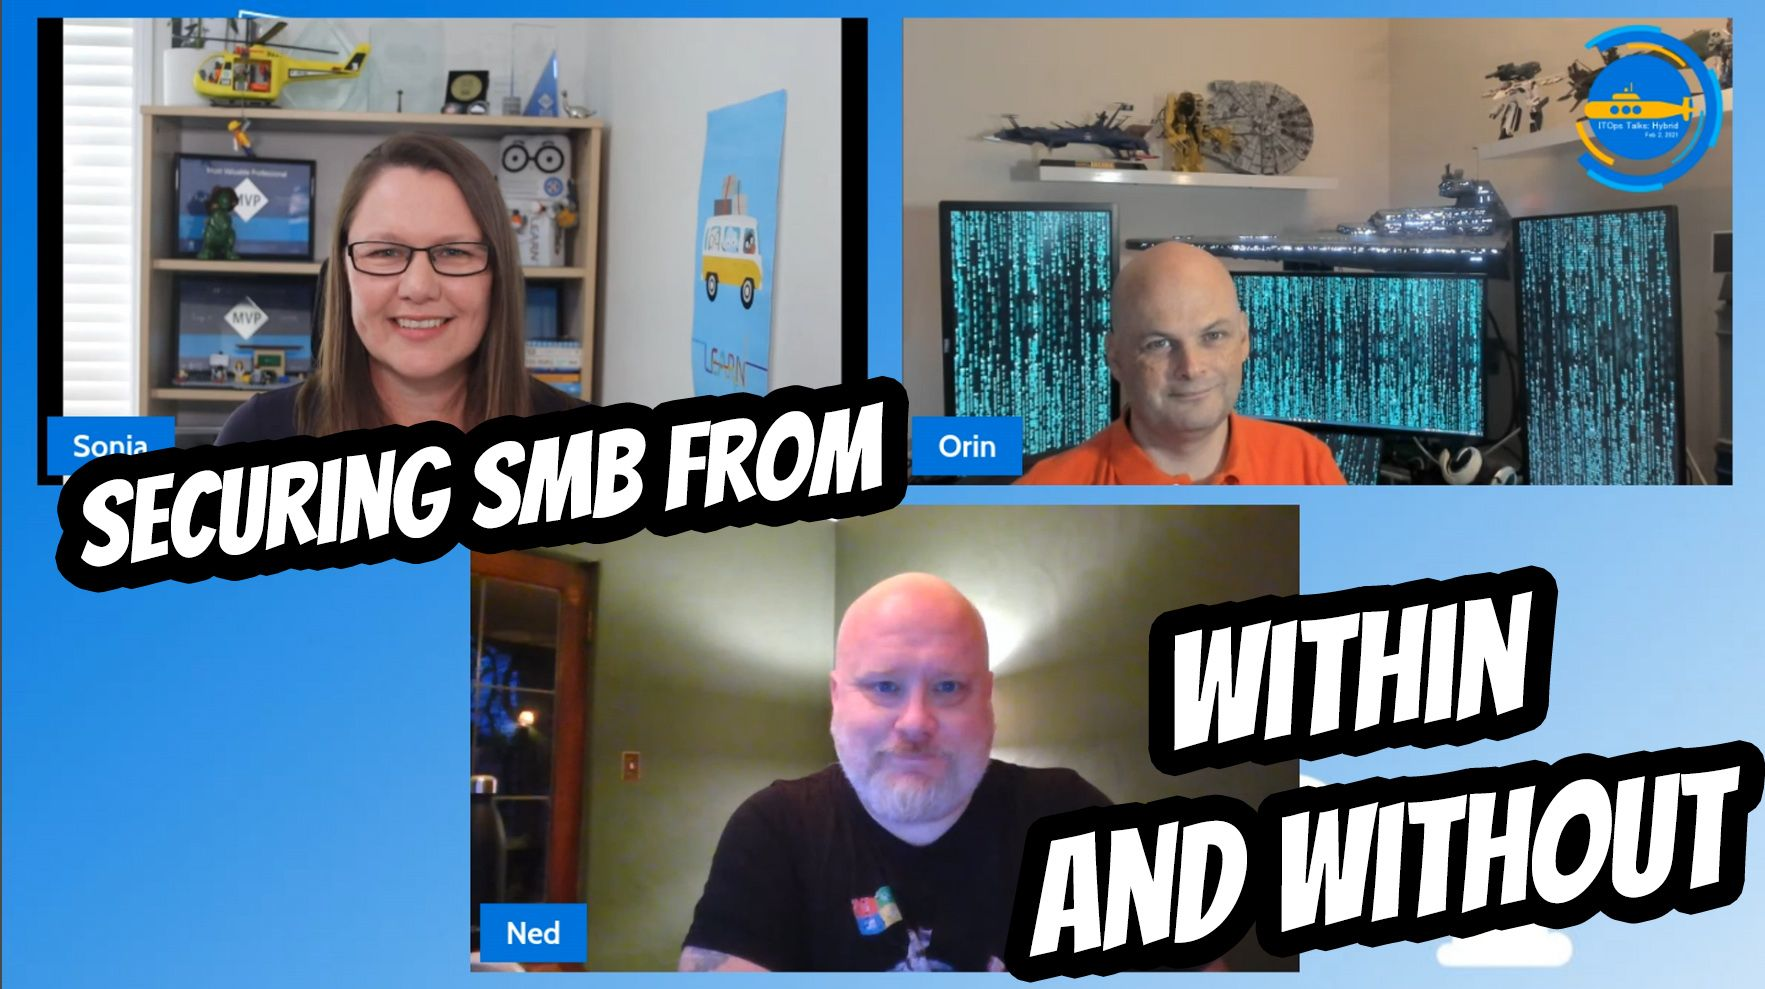 OPS104: Securing SMB from within and without